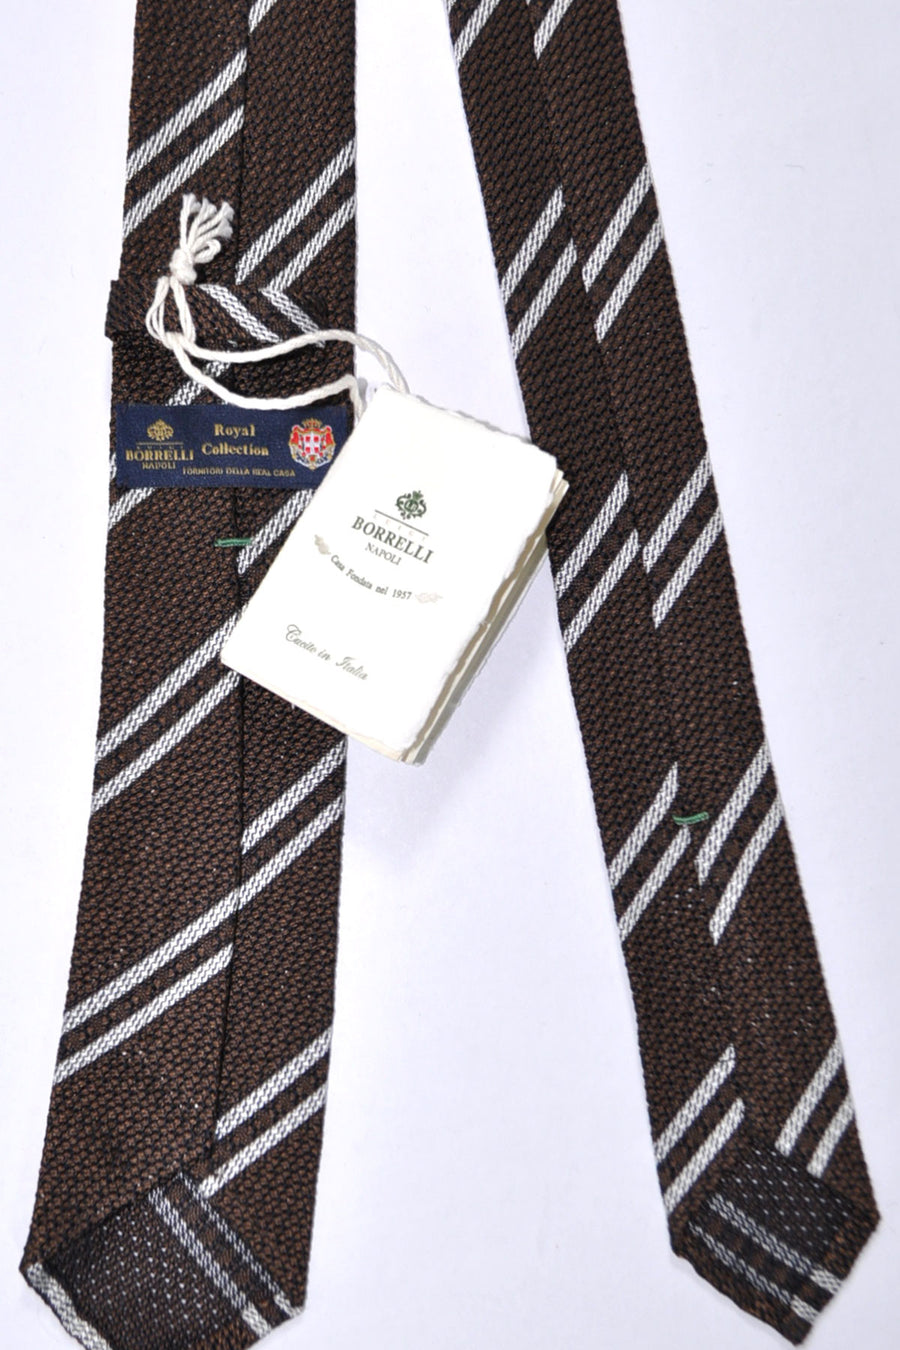 Luigi Borrelli Narrow Sevenfold Tie ROYAL COLLECTION Brown Silver Stripes